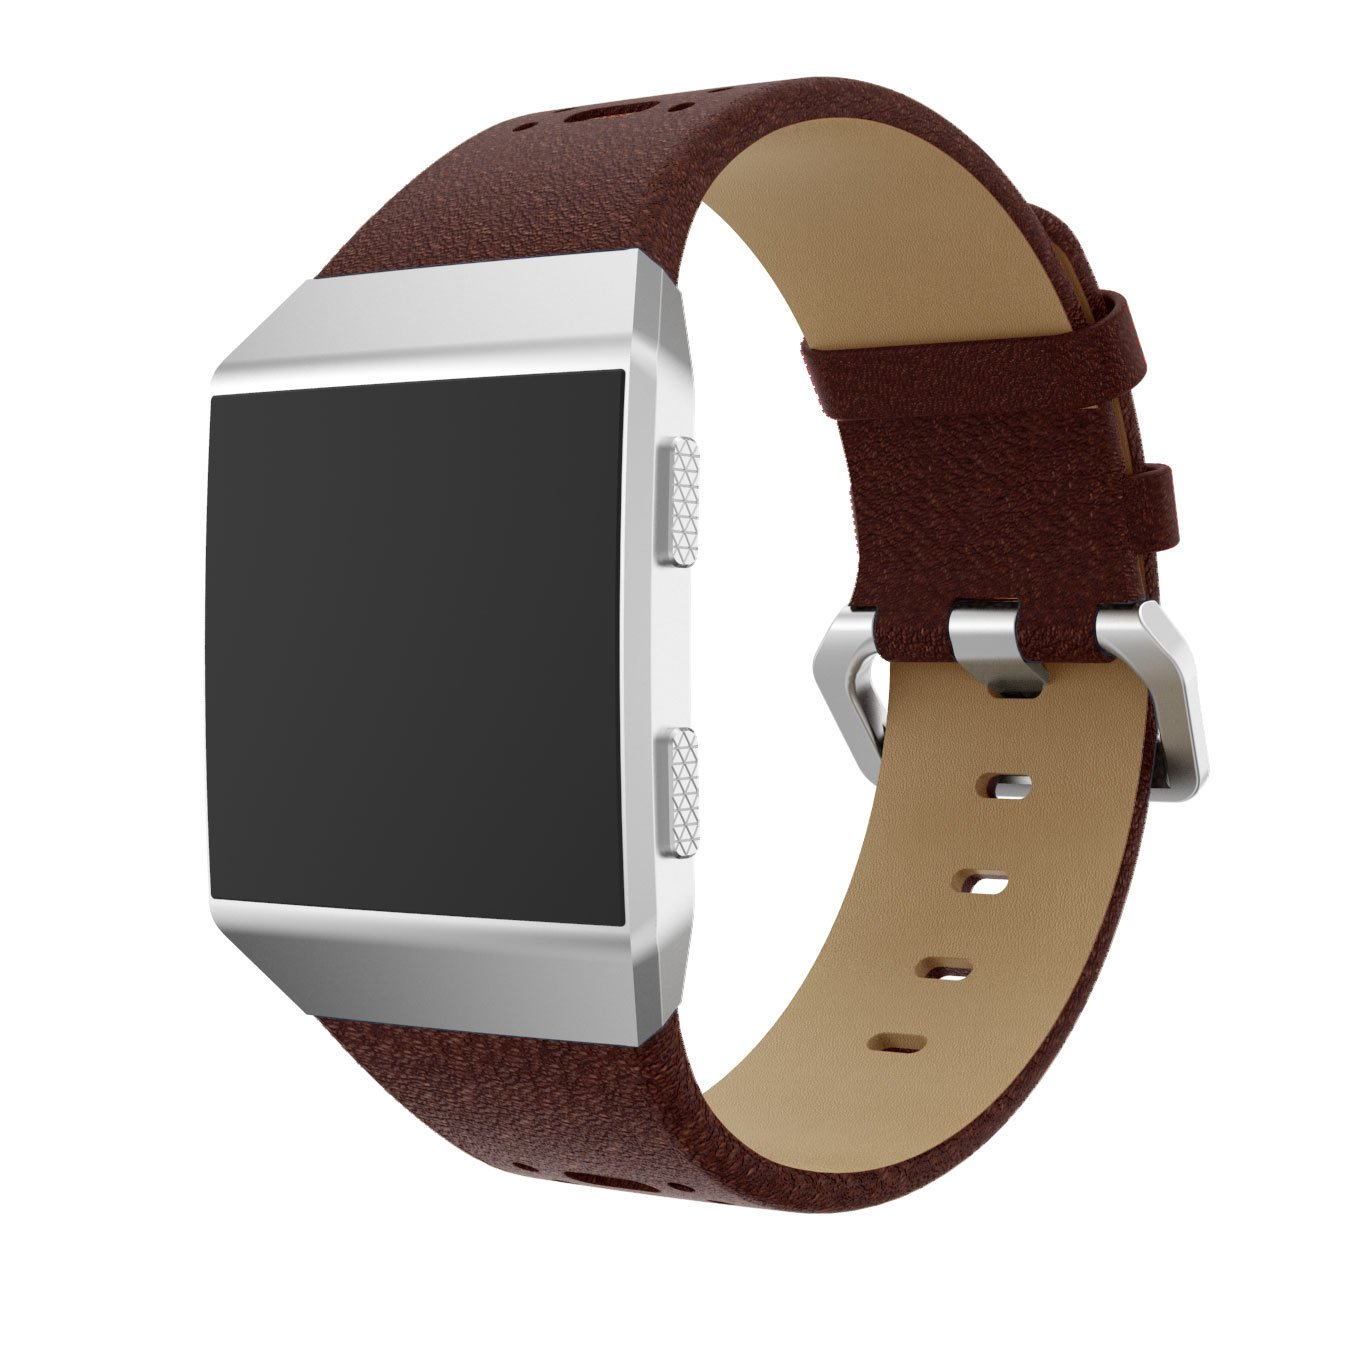 Hero Iand Bands for Fitbit Ionic Genuine Watchband Leather Strap Watch Band Replacement Wrist Bracelet Straps for Fitbit Ionic Wristband 8 colors for choose (Brown Red)